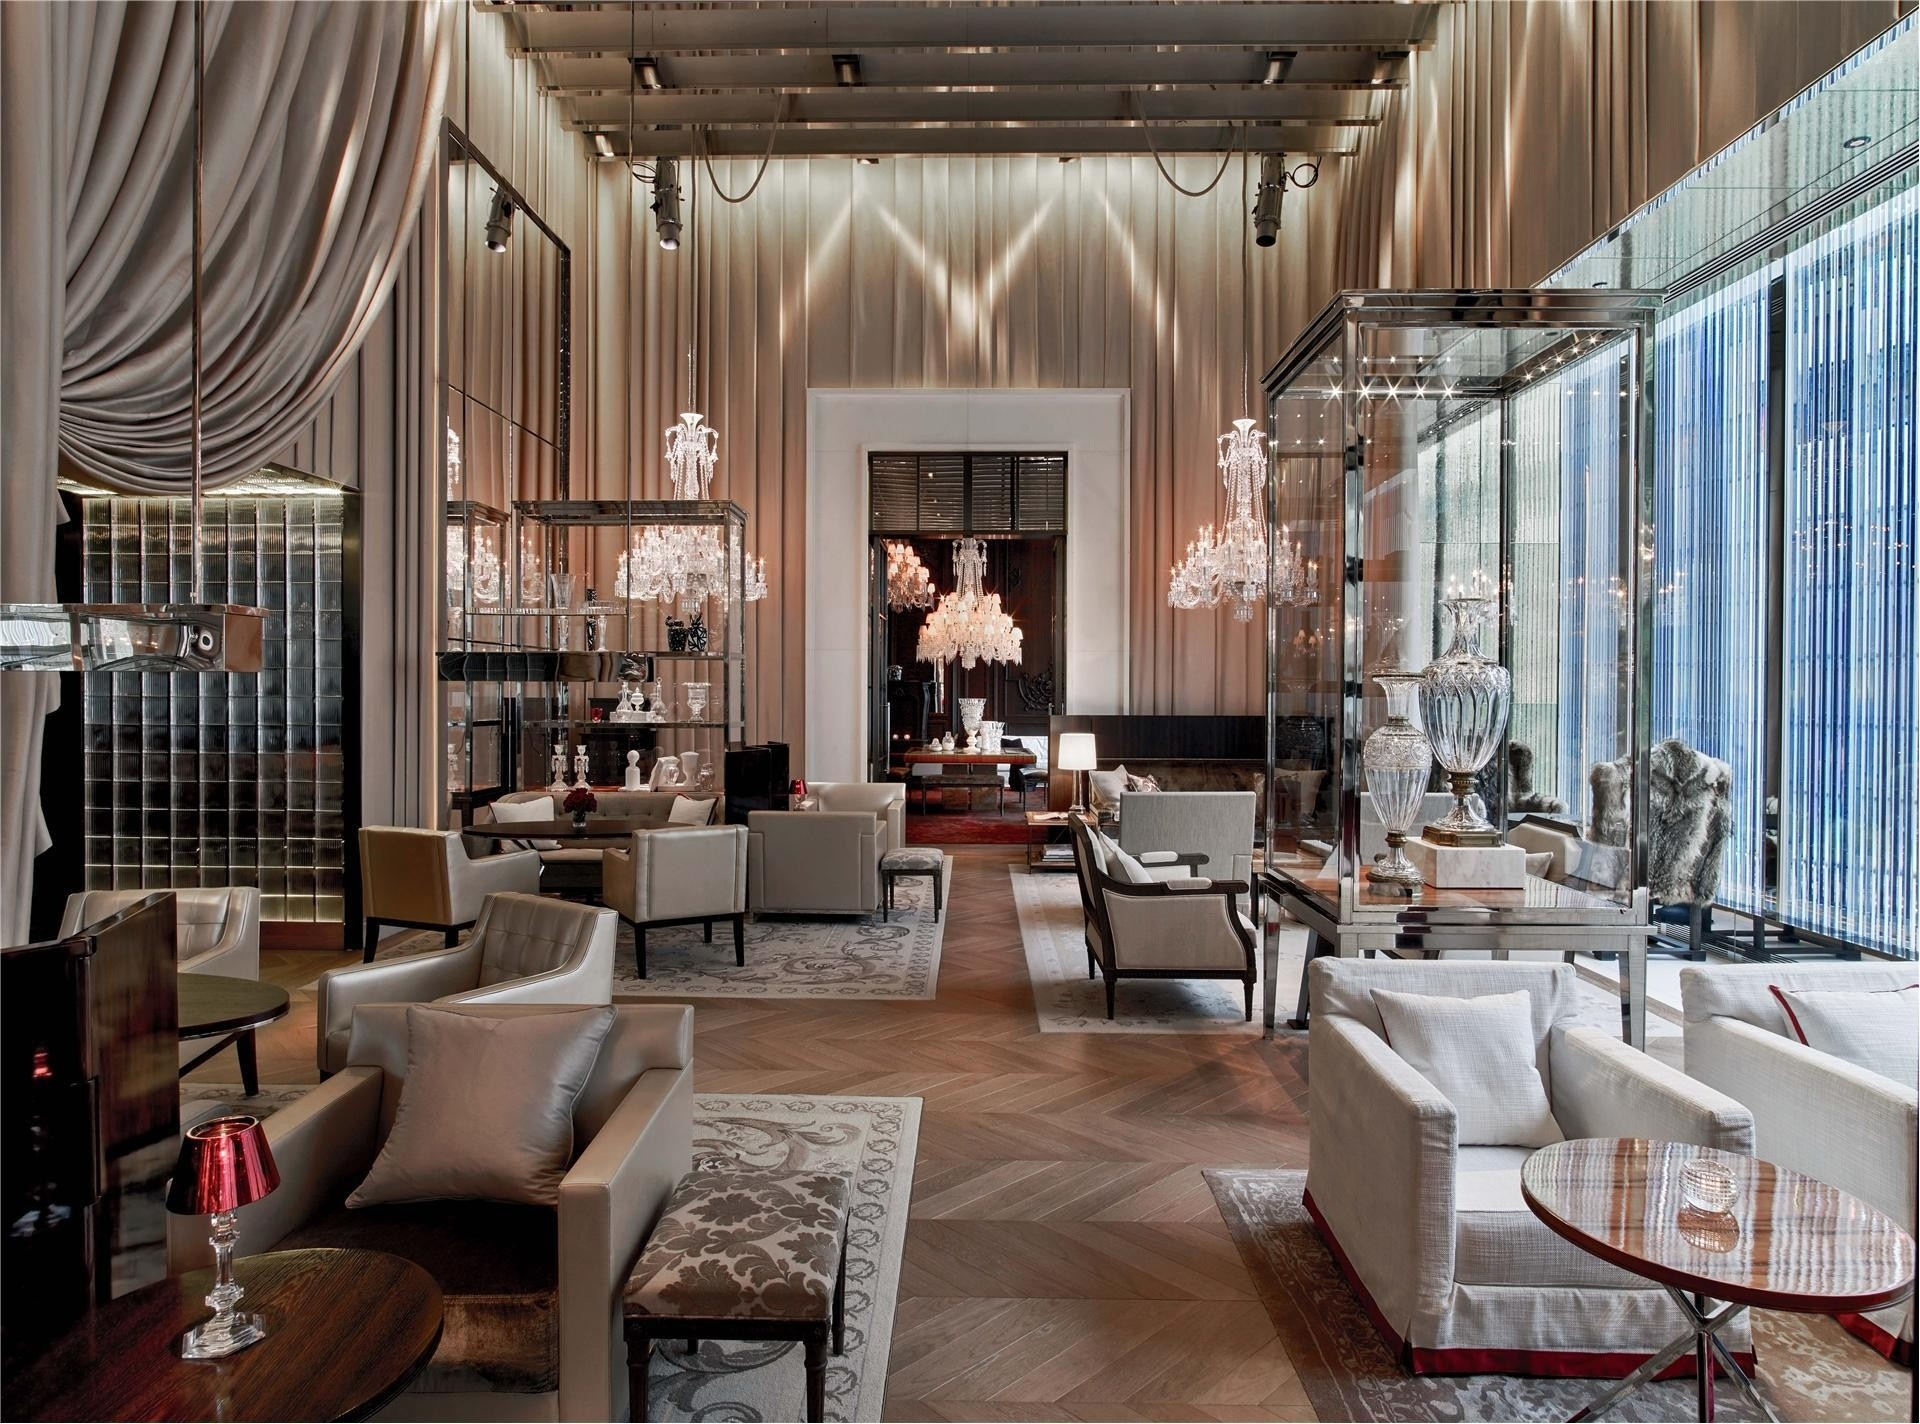 22. Condominiums for Sale at Baccarat Hotel And Residences, 20 W 53RD ST , PH48/49 Midtown West, New York, NY 10103